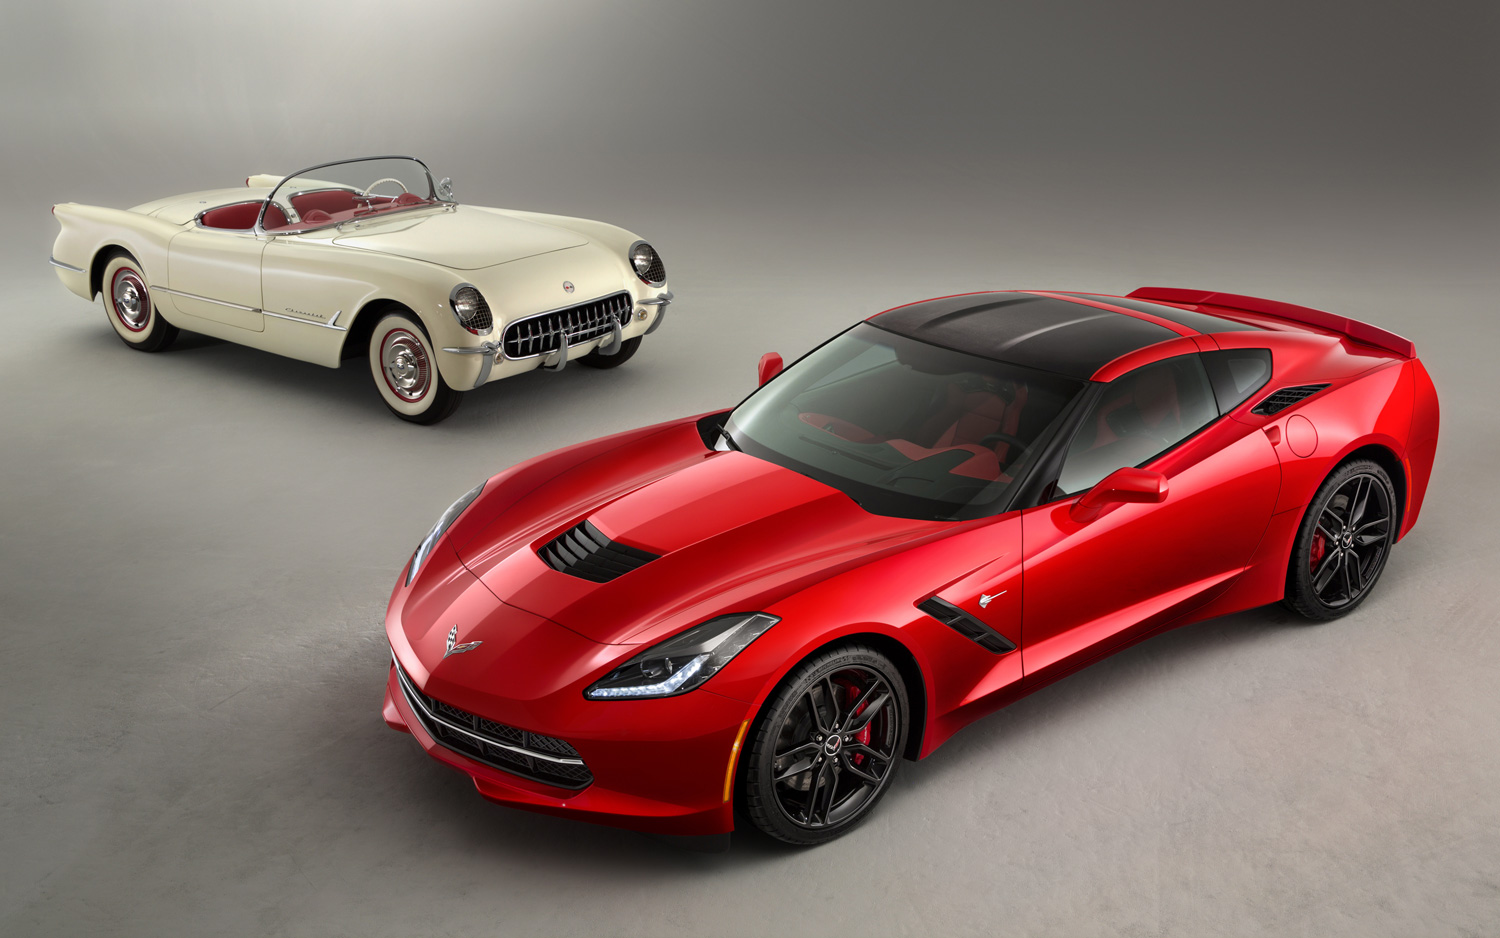 2014 Corvette Stingray For Sale >> 2014 Chevrolet Corvette C7 | New cars reviews